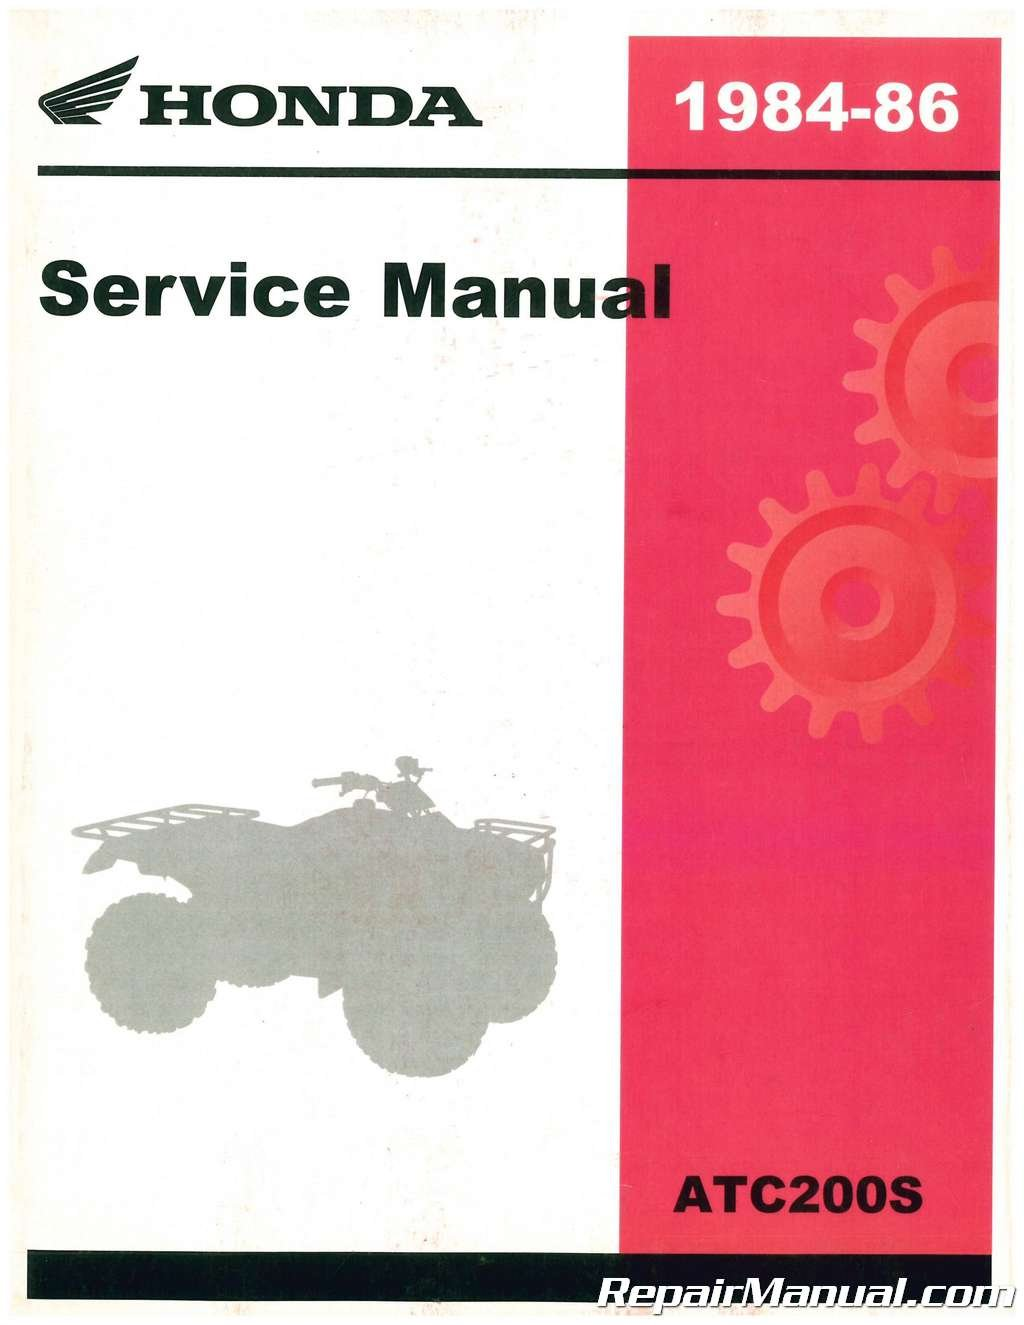 61VM402 1984-1986 Honda ATC200S Service Manual: Manufacturer: Amazon.com:  Books